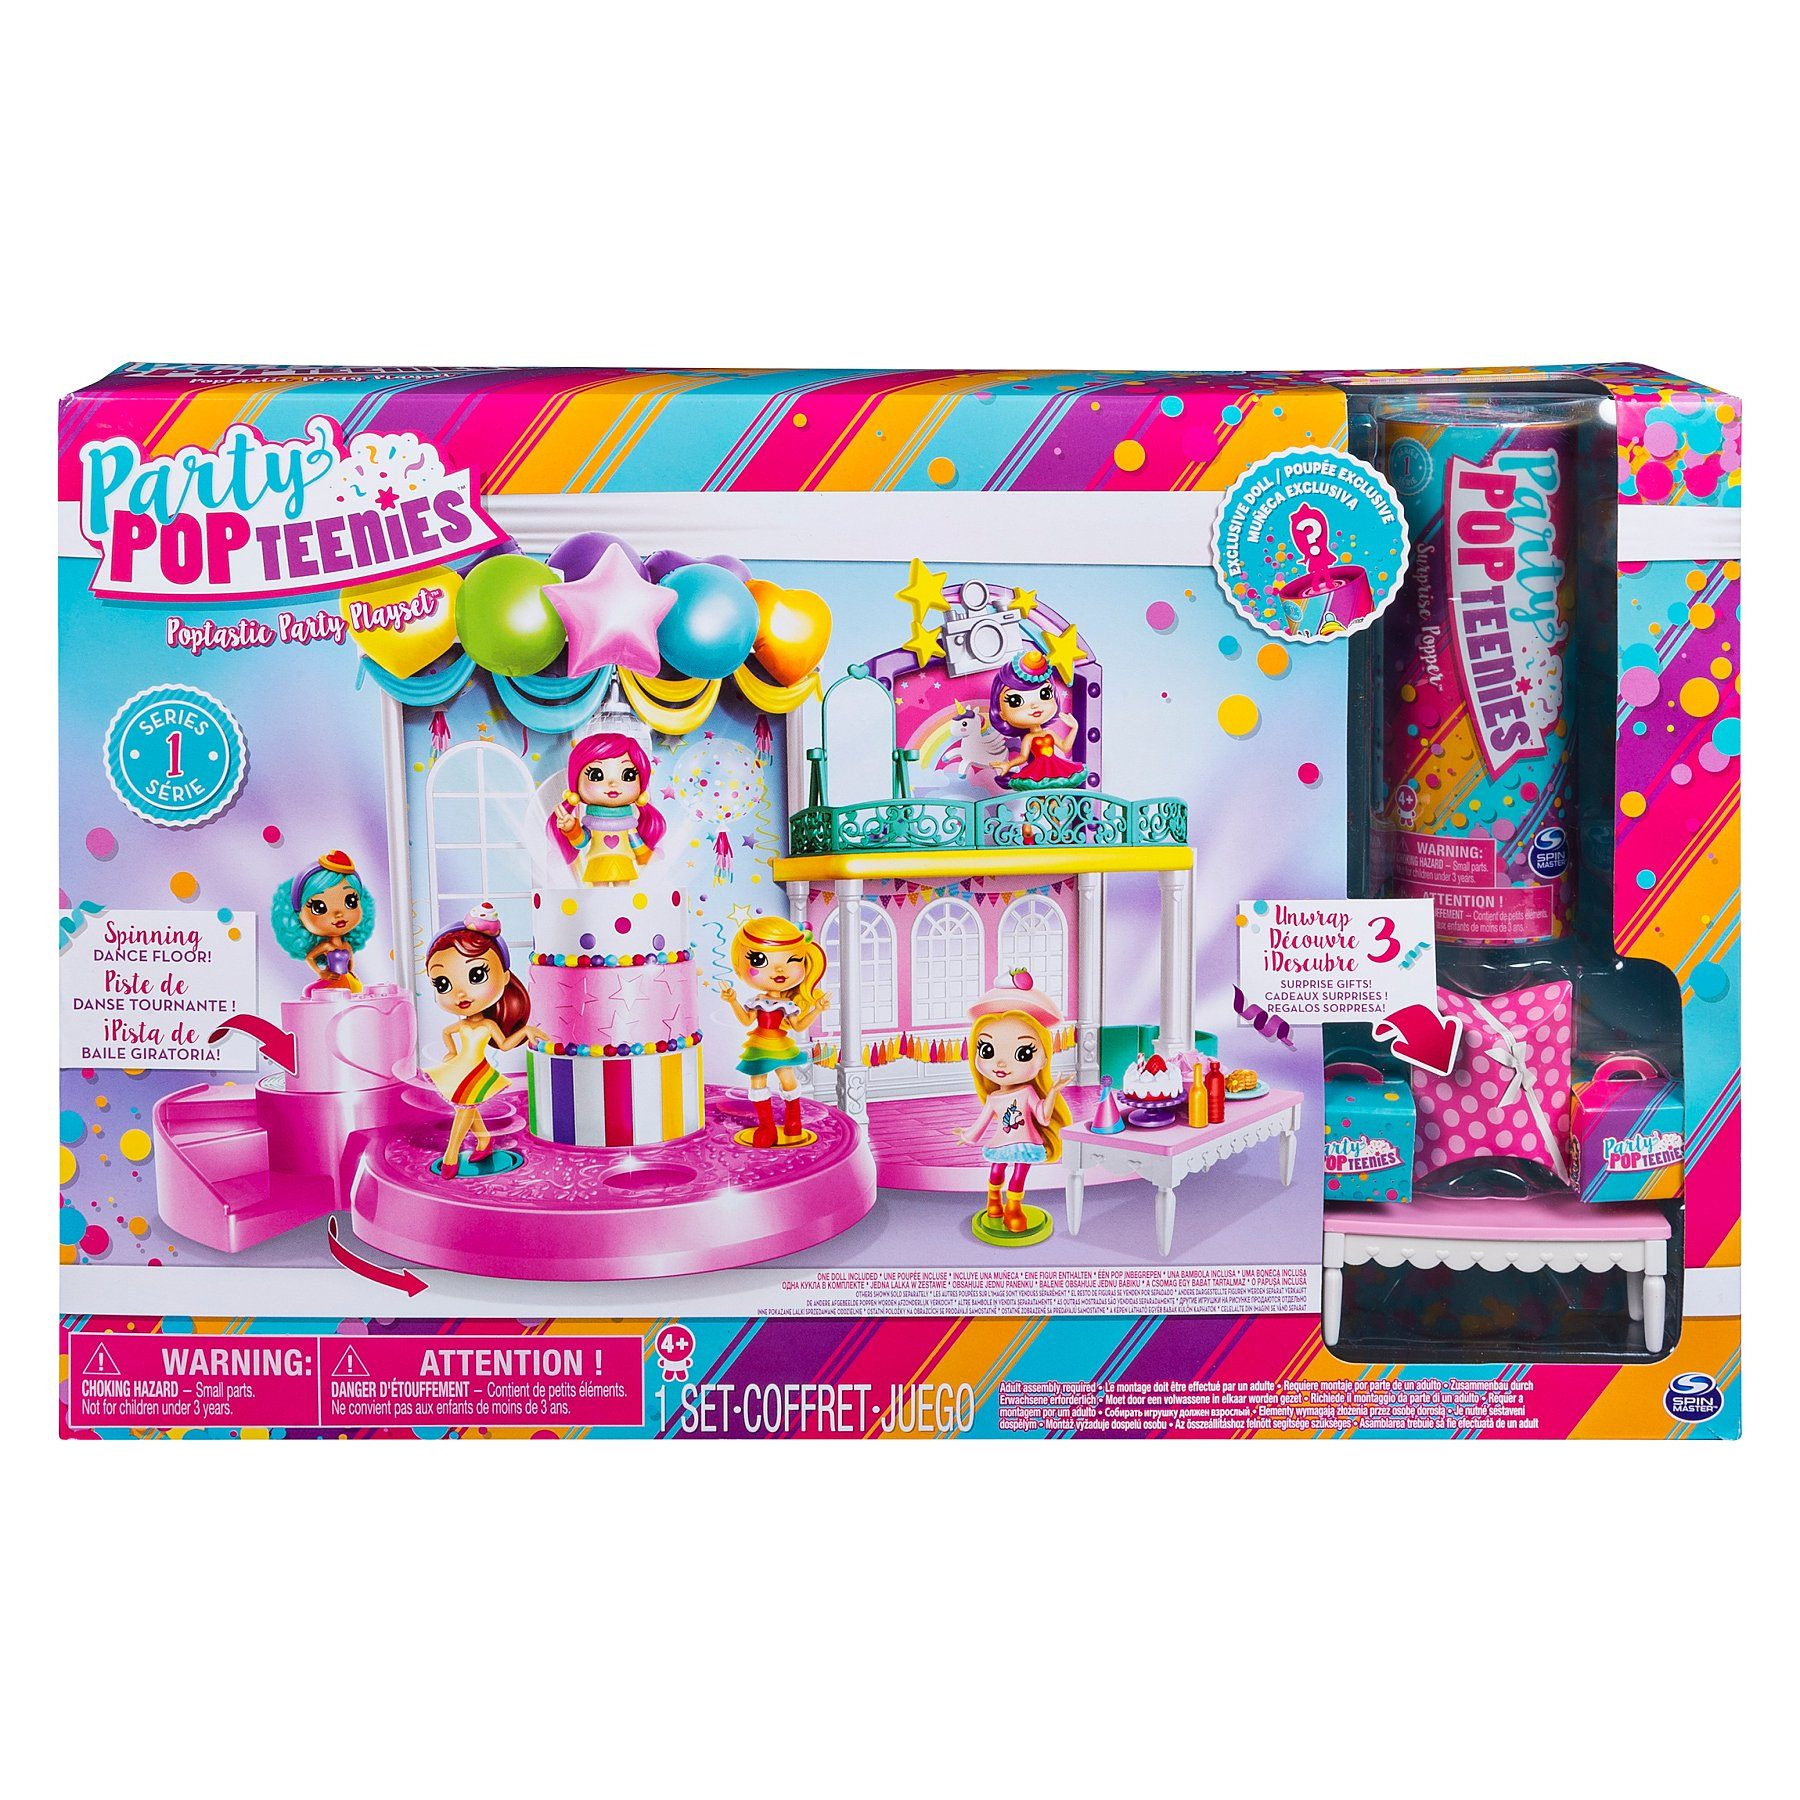 Lit Cars Enfant Le Luxe Party Popteenies Poptastic Party Playset with Confetti Exclusive